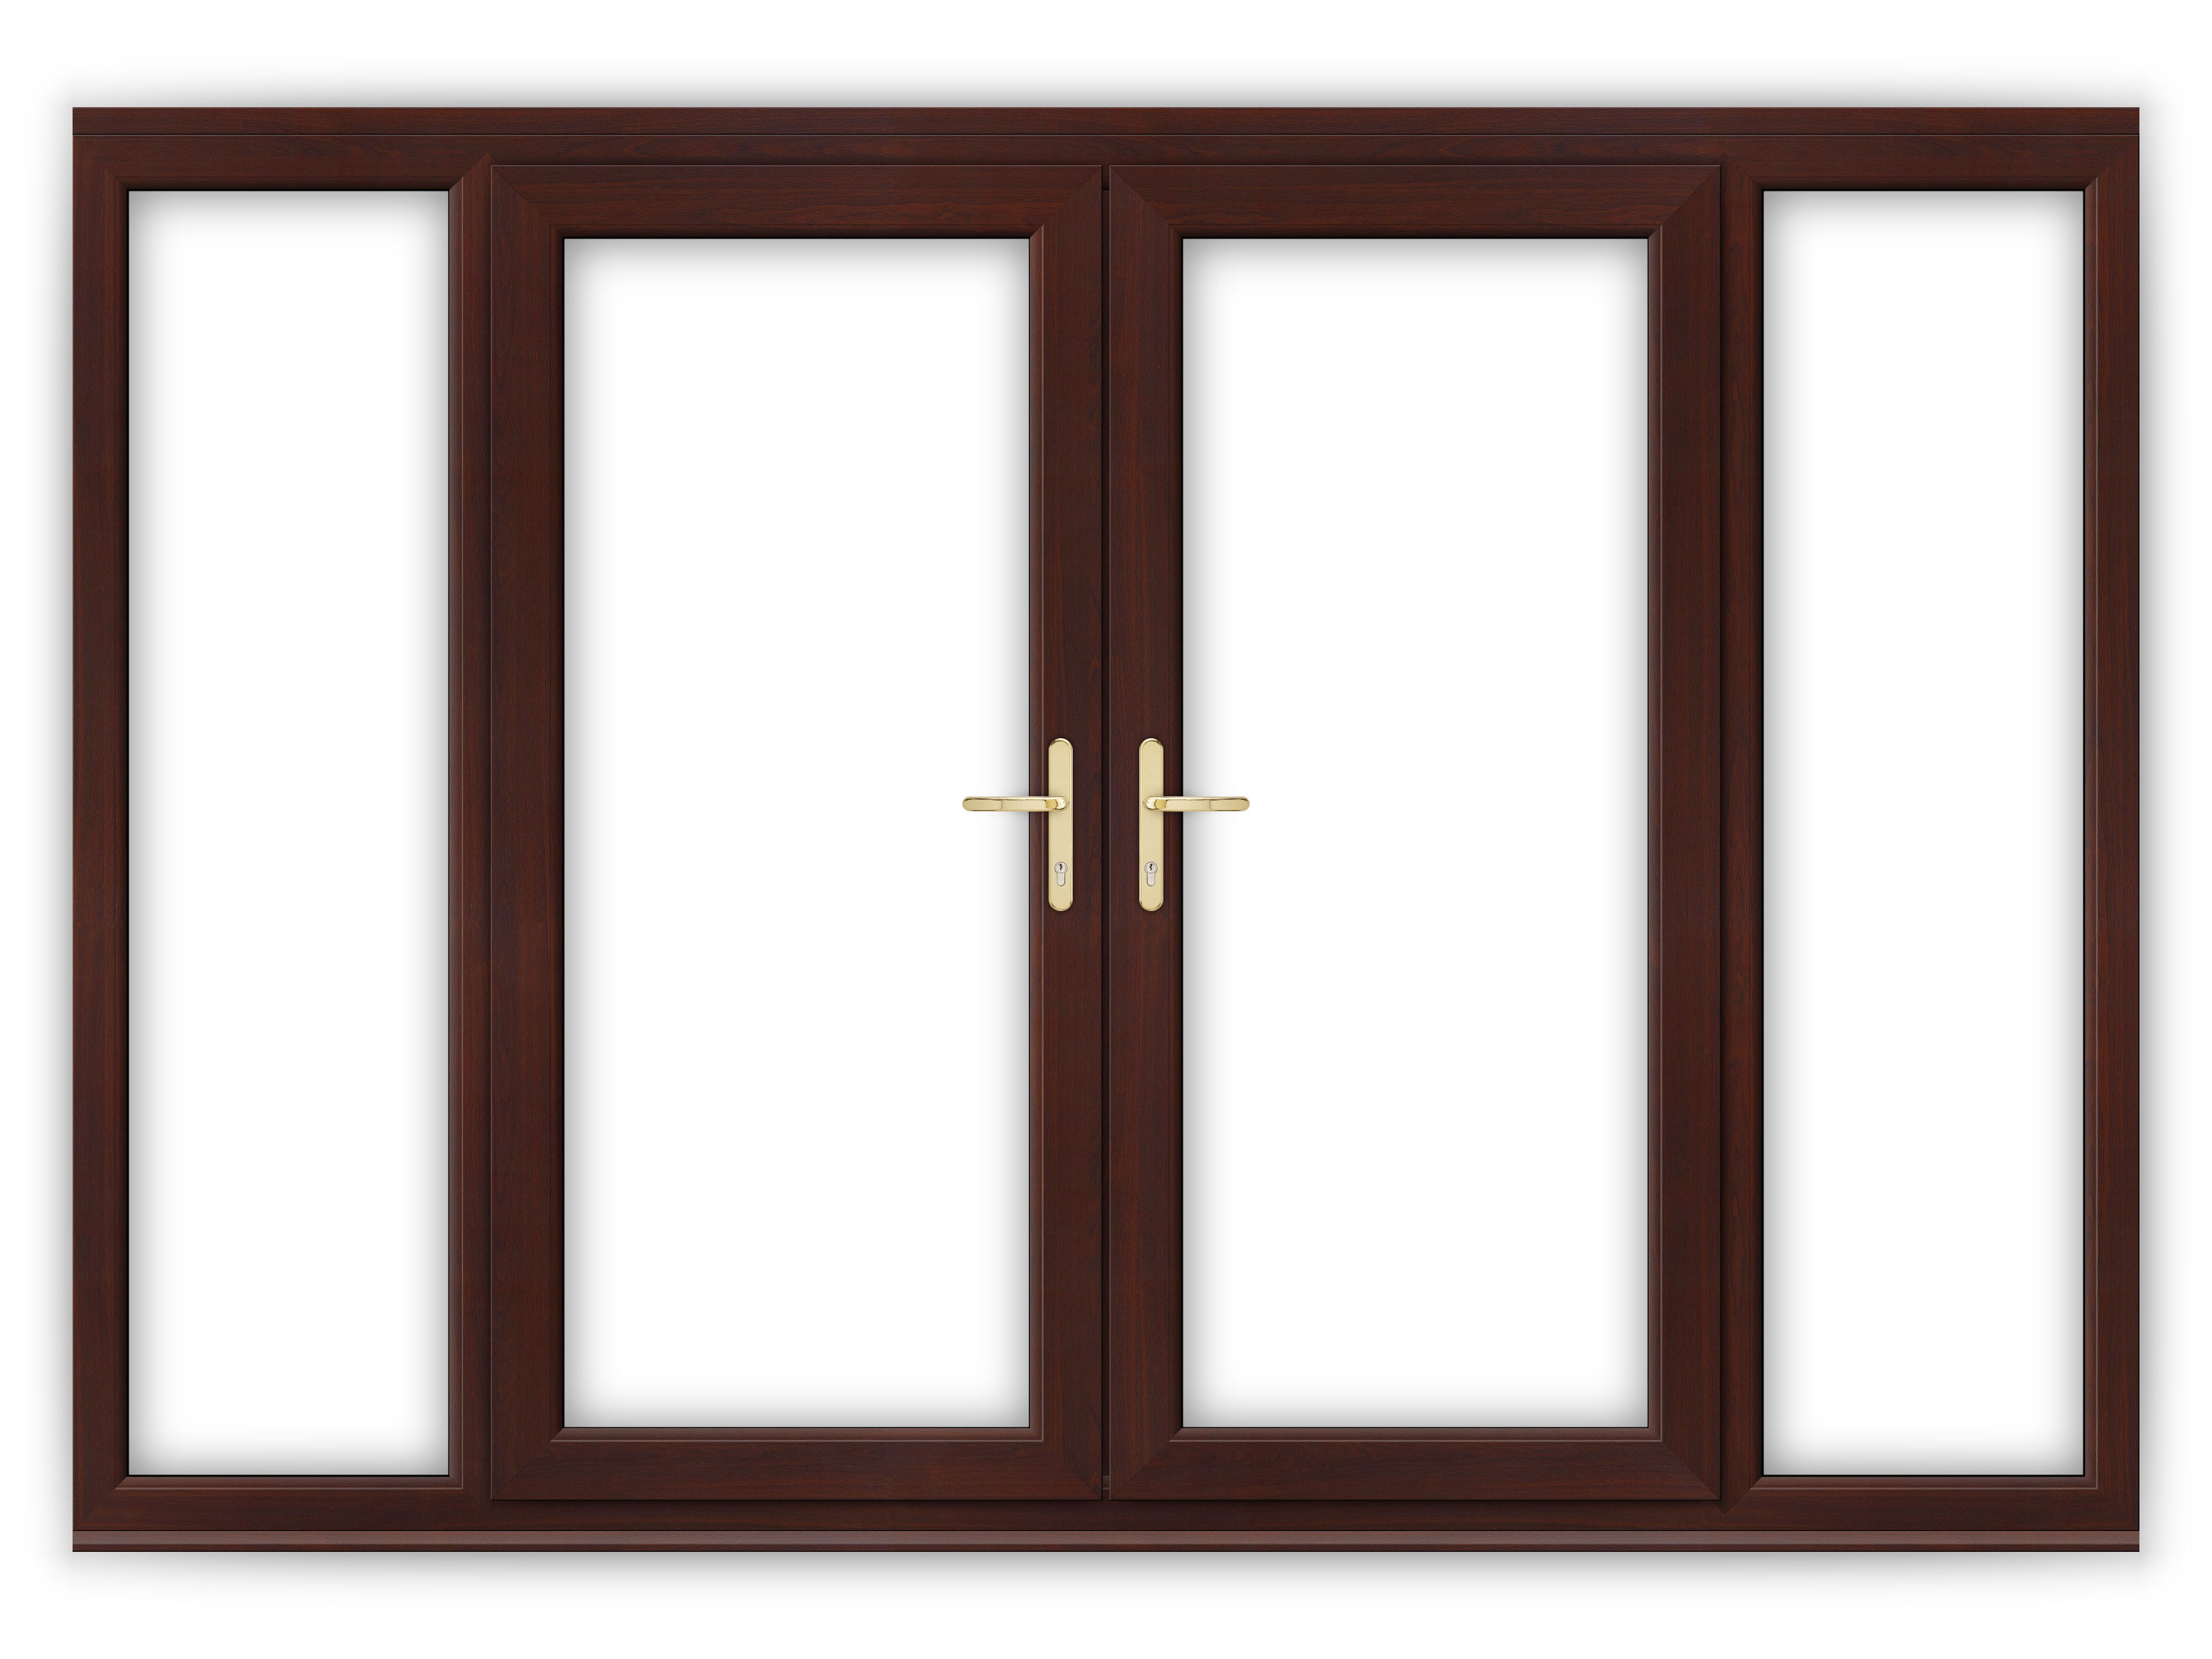 6ft rosewood upvc french doors with wide side panels for Doors with panels